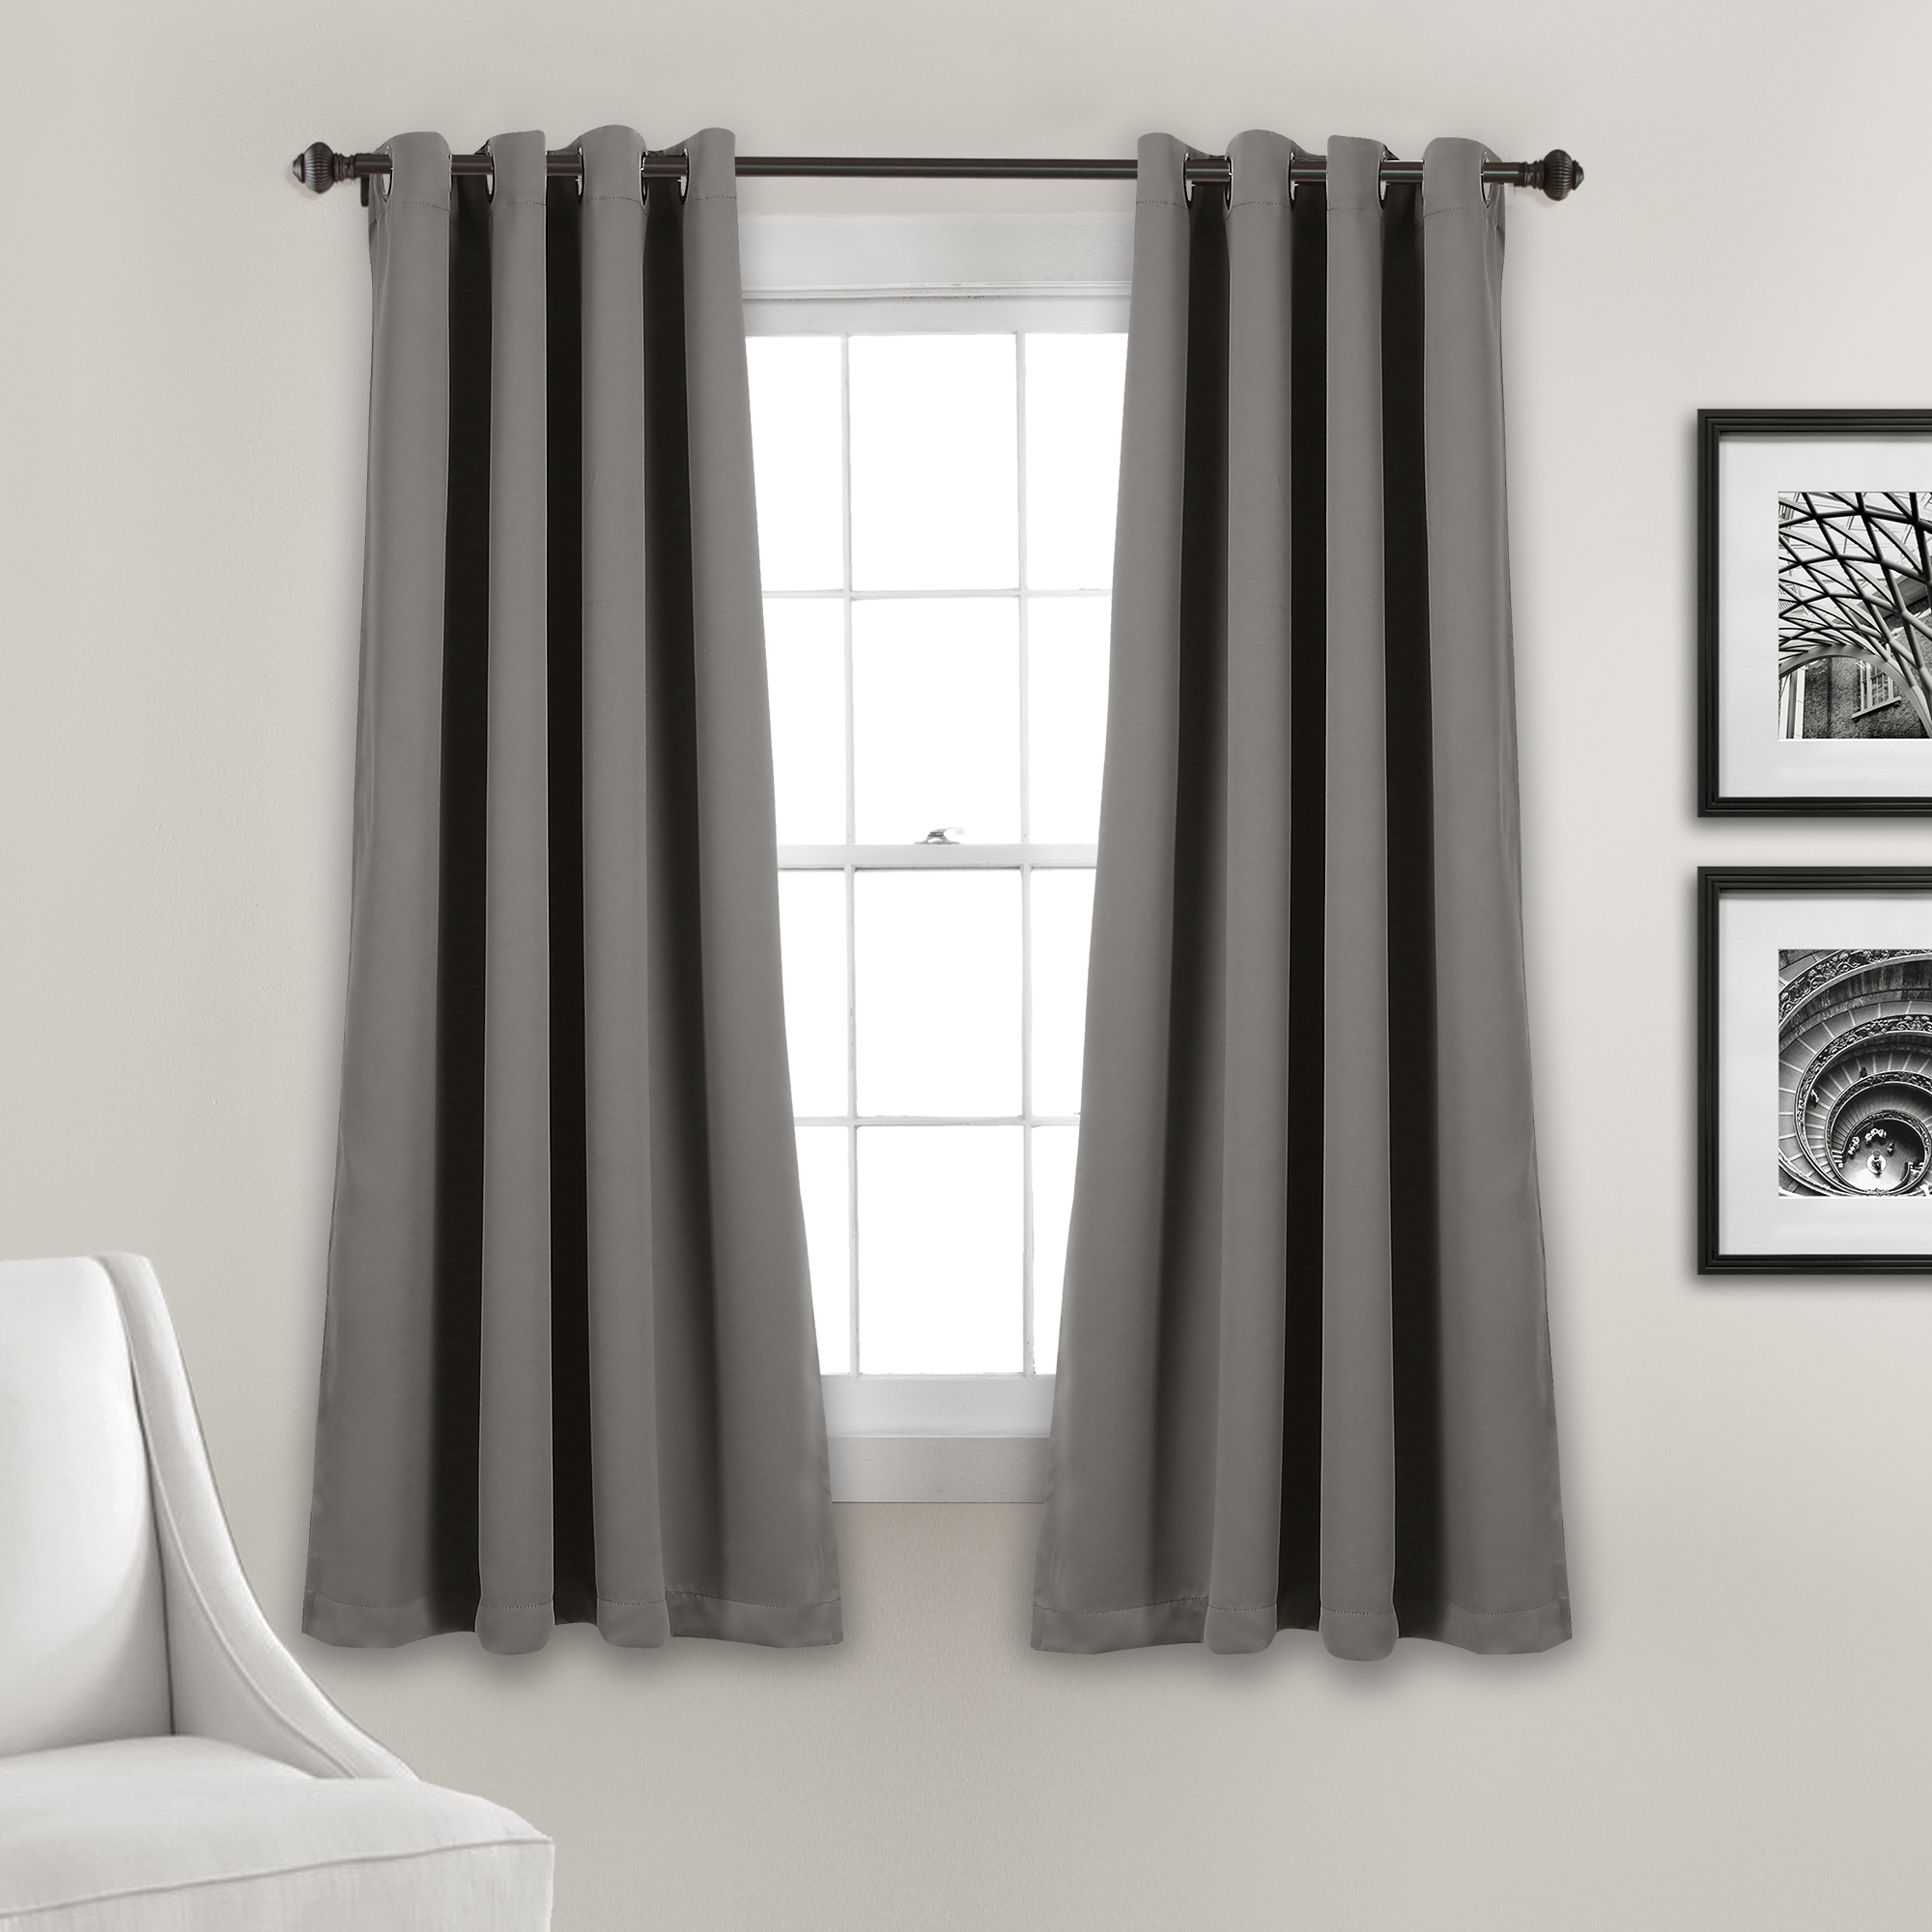 Lush Décor Insulated Grommet Blackout Curtain Panels Pair With Insulated Grommet Blackout Curtain Panel Pairs (View 15 of 20)